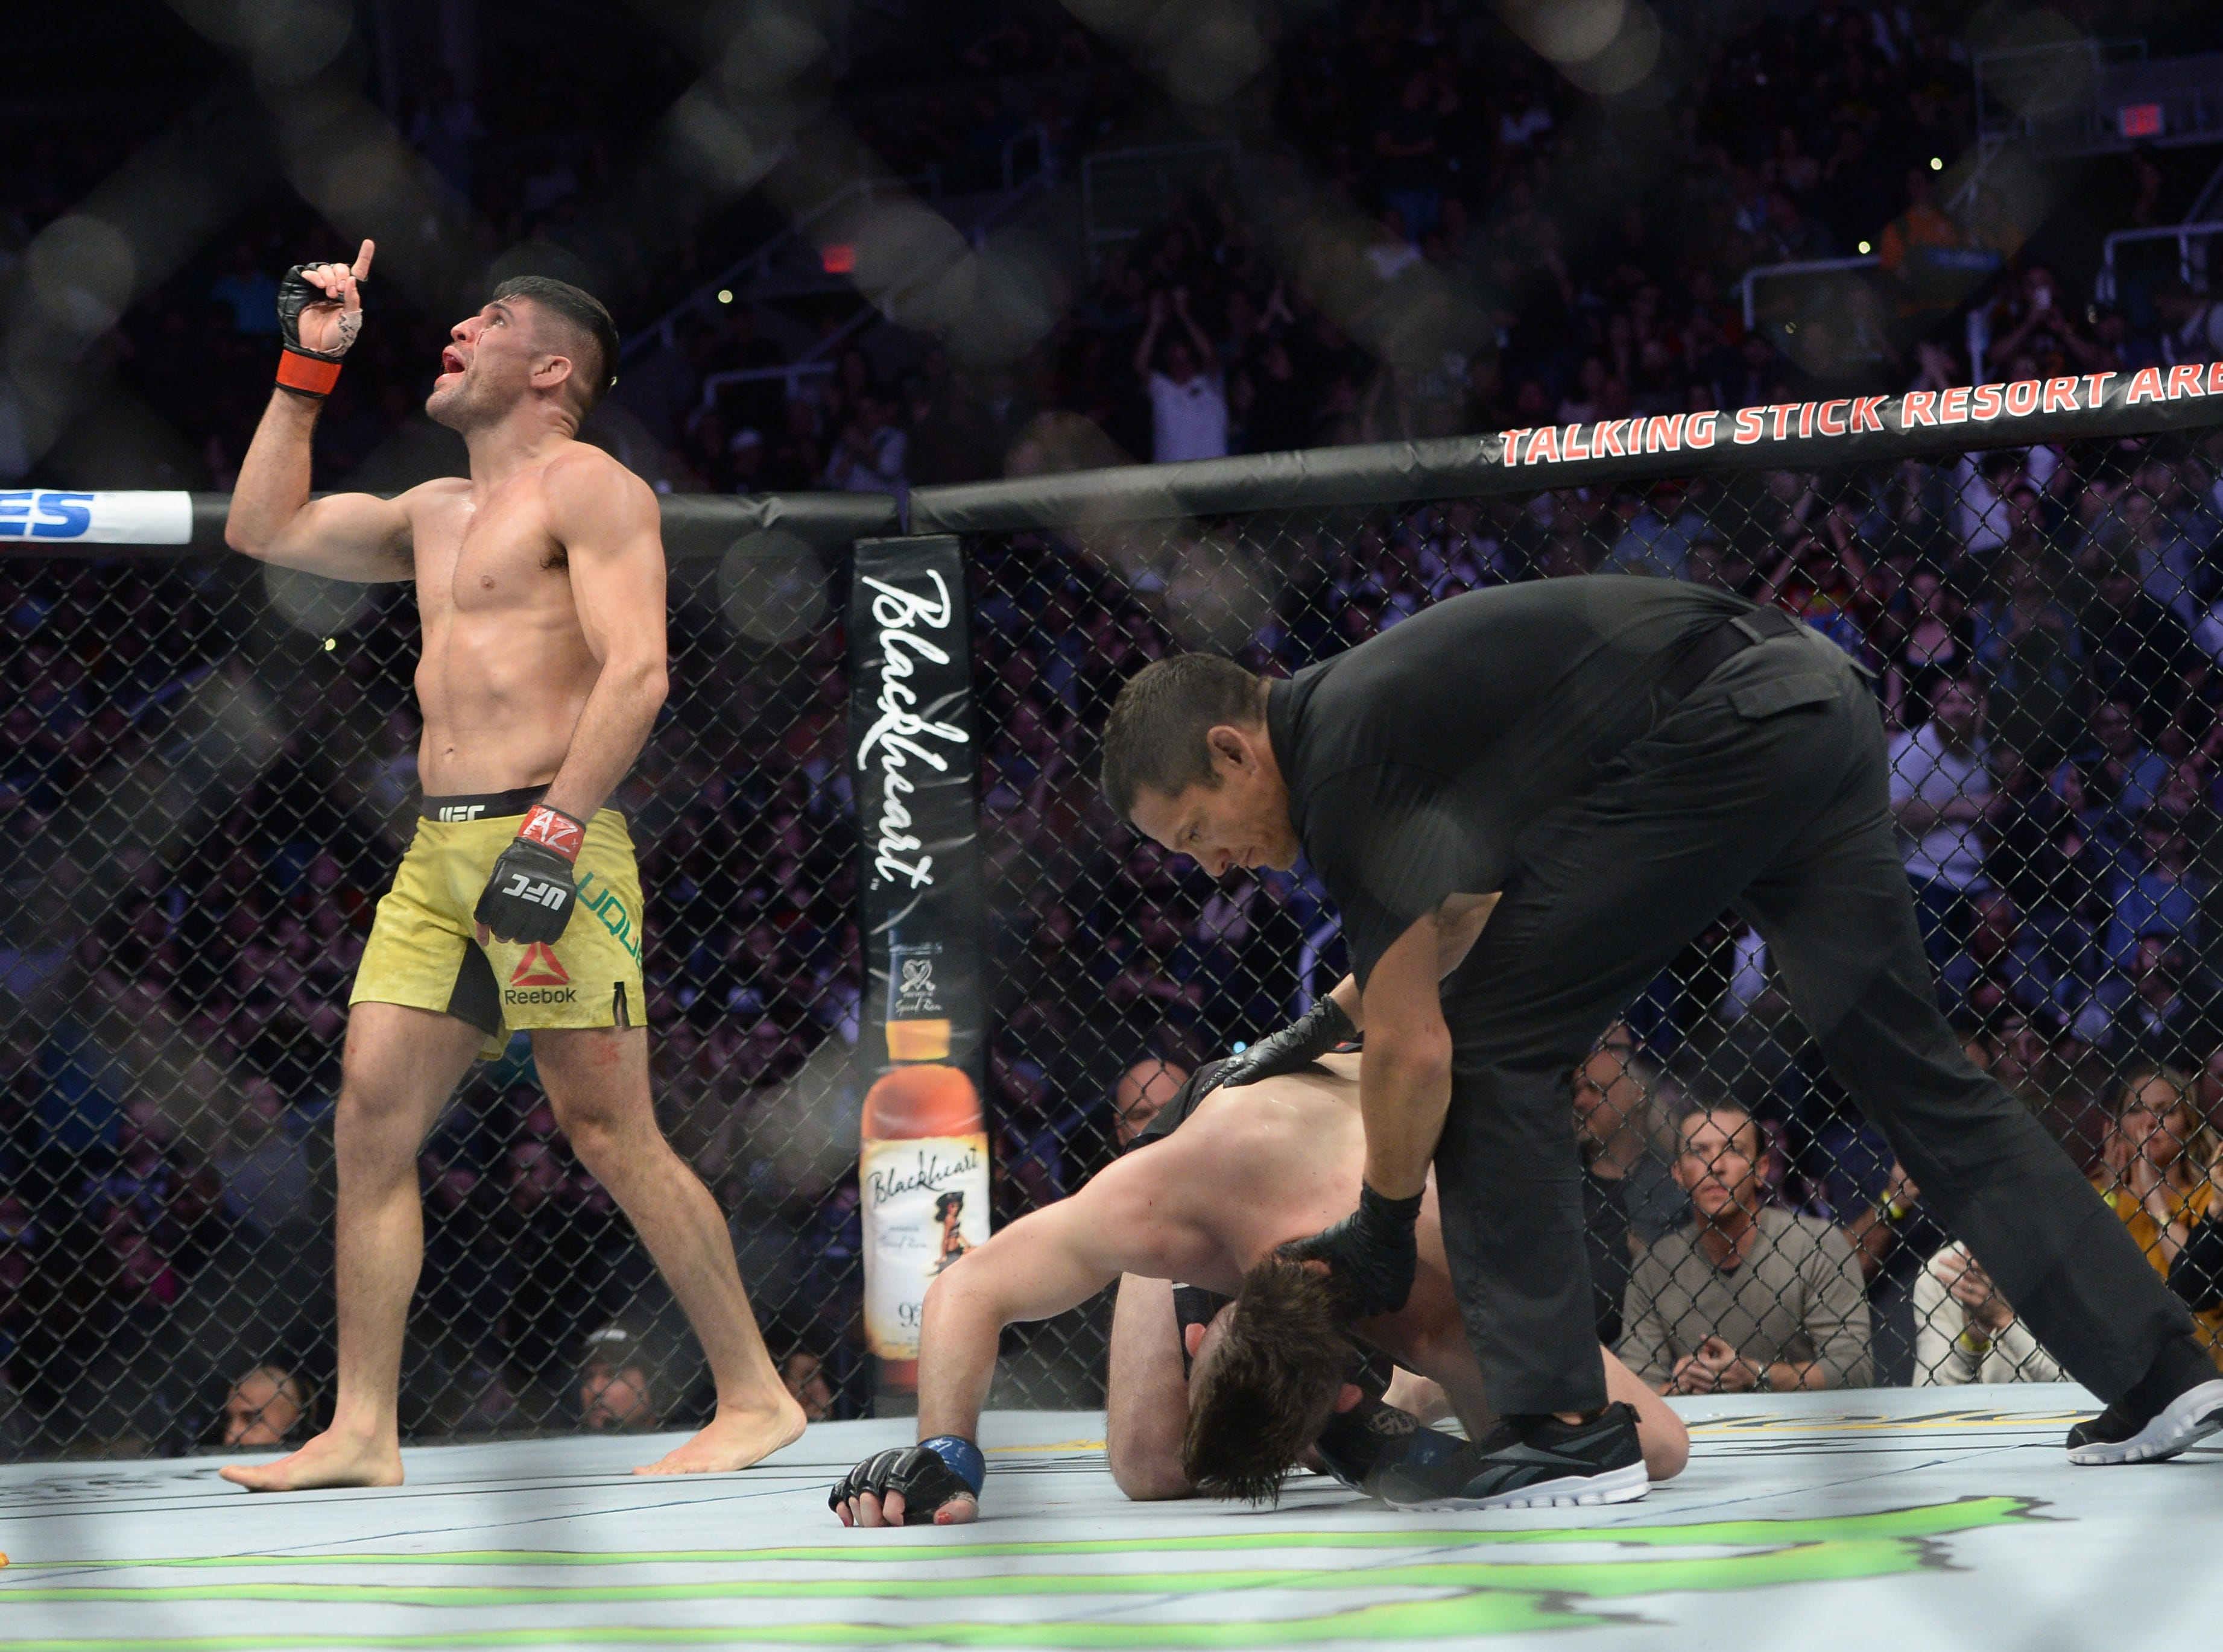 Feb 17, 2019; Phoenix, AZ, USA; Vicente Luque (red) finishes Bryan Barberena (blue) during their welterweight bout during UFC Fight Night at Talking Stick Resort Arena. Luque won via third round TKO. Mandatory Credit: Joe Camporeale-USA TODAY Sports